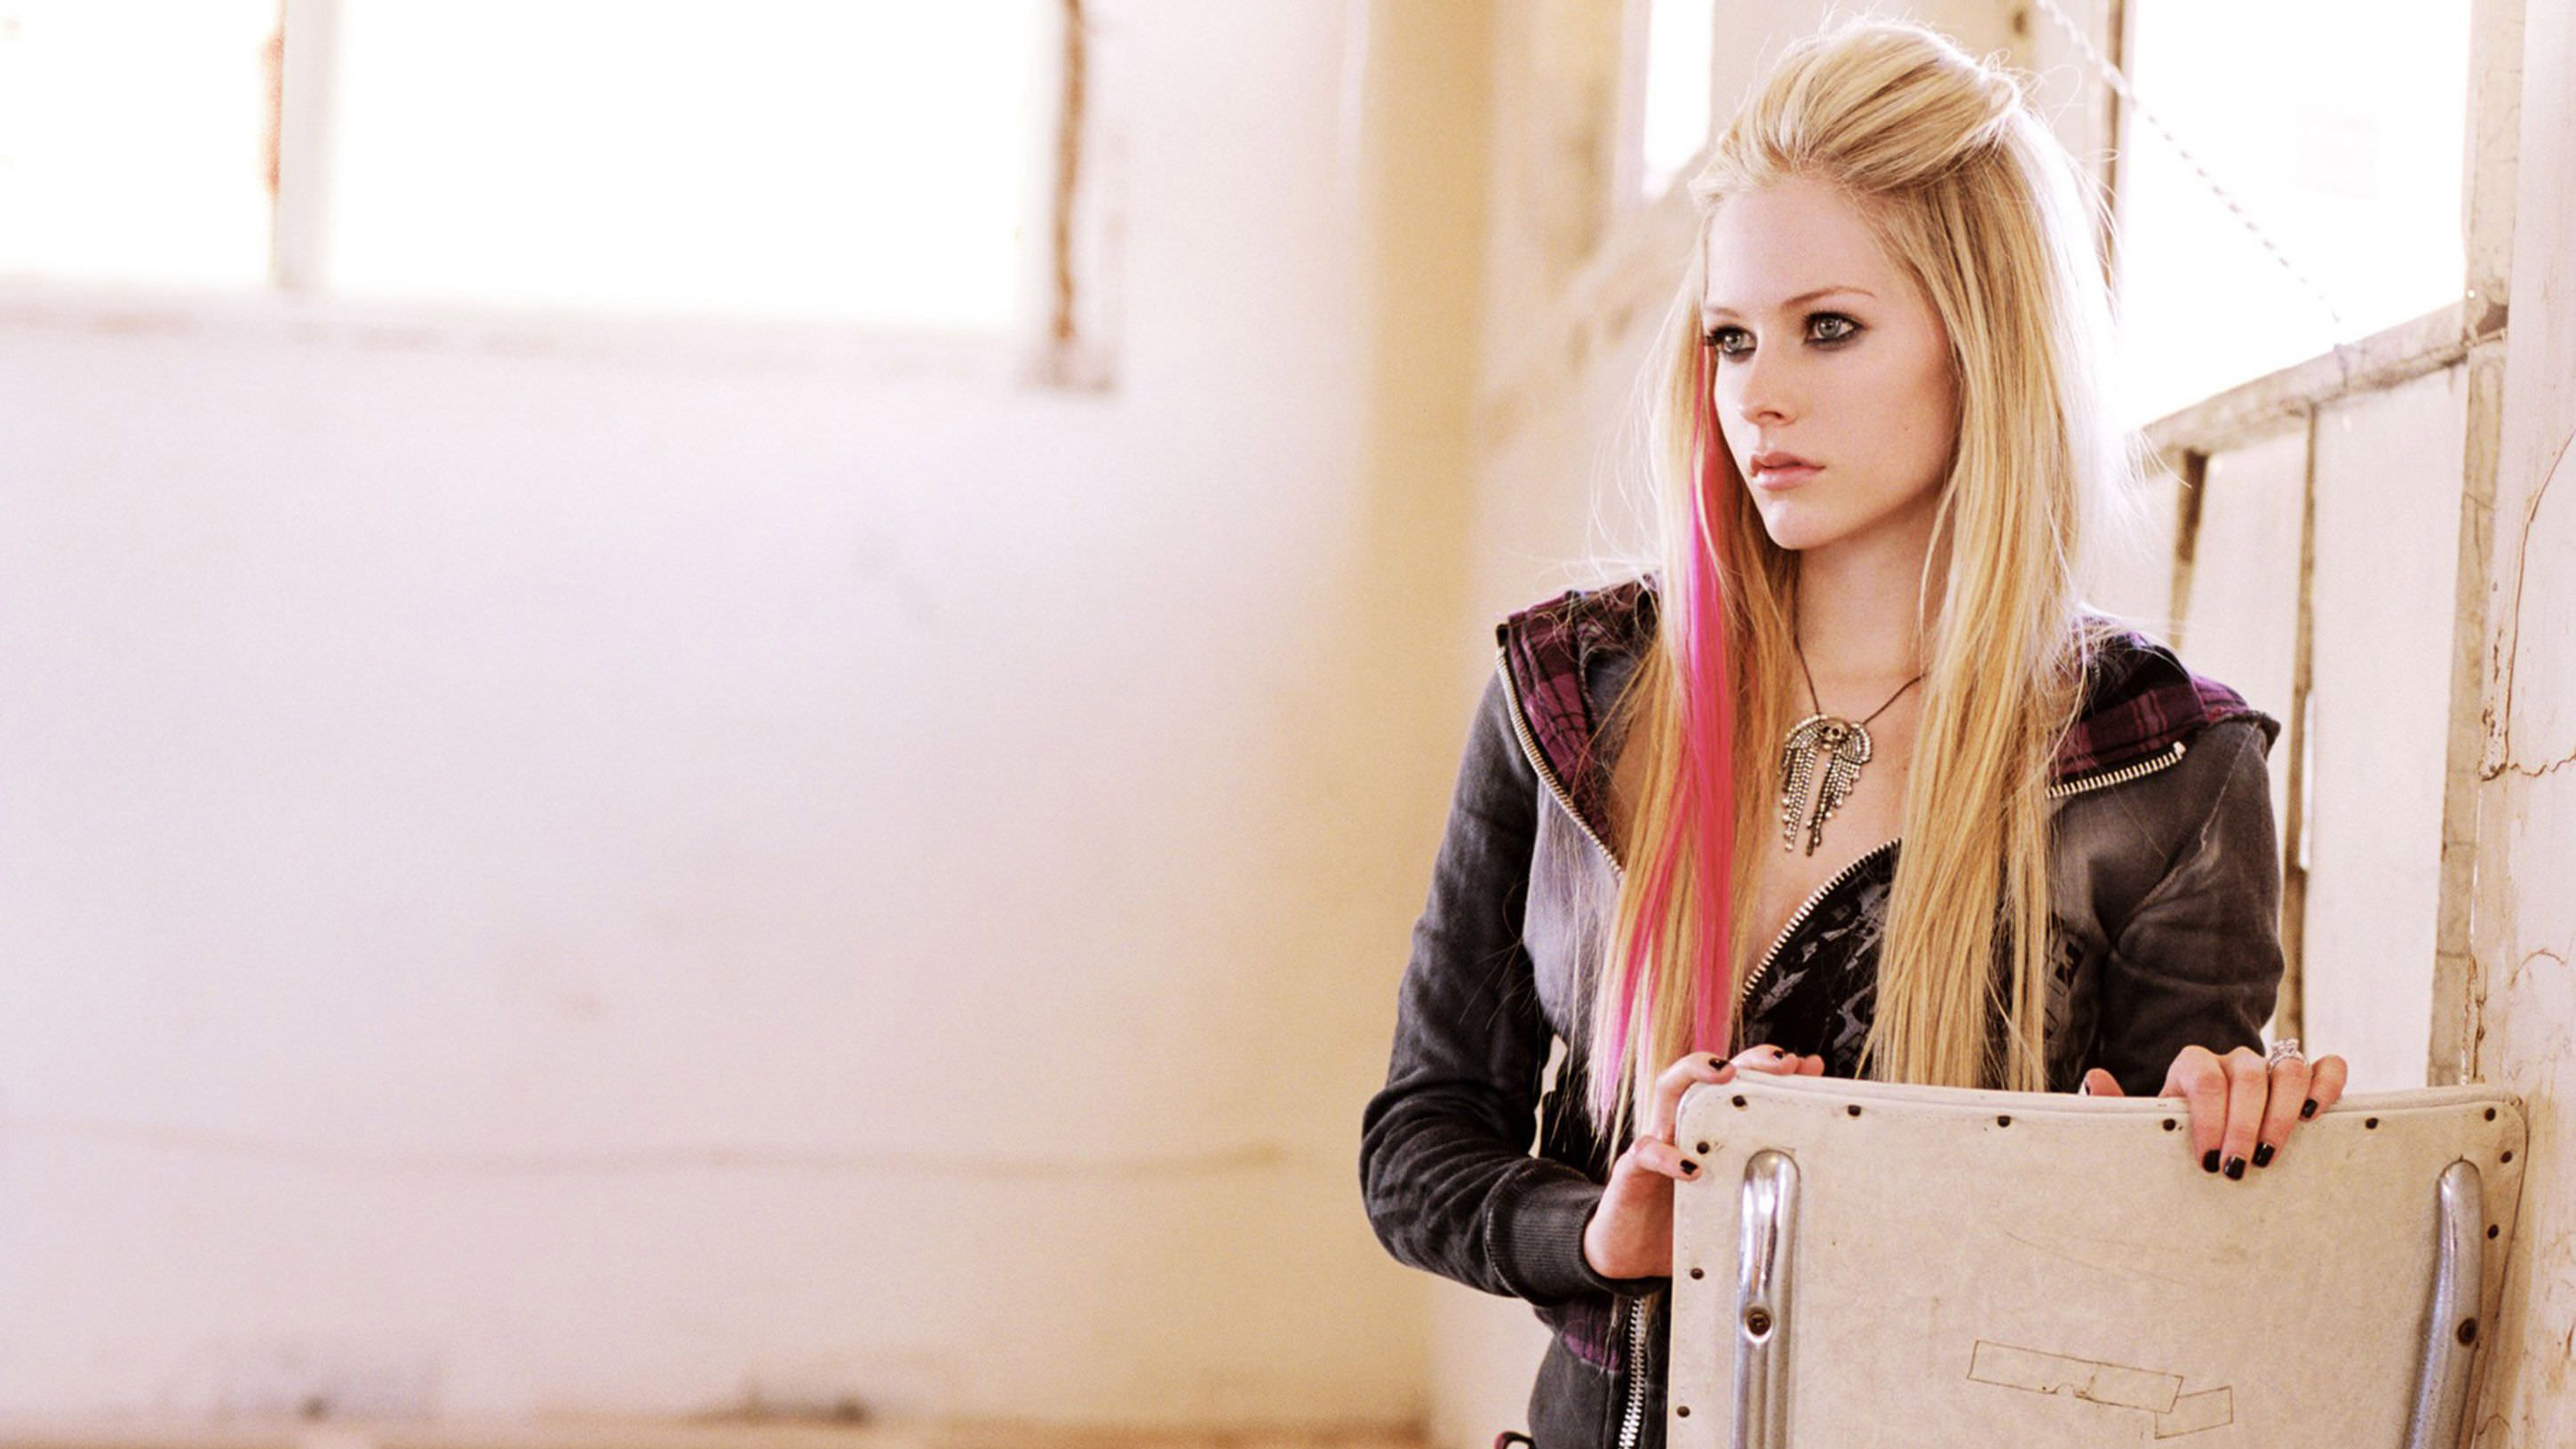 Avril Lavigne Hd Music 4k Wallpapers Images Backgrounds